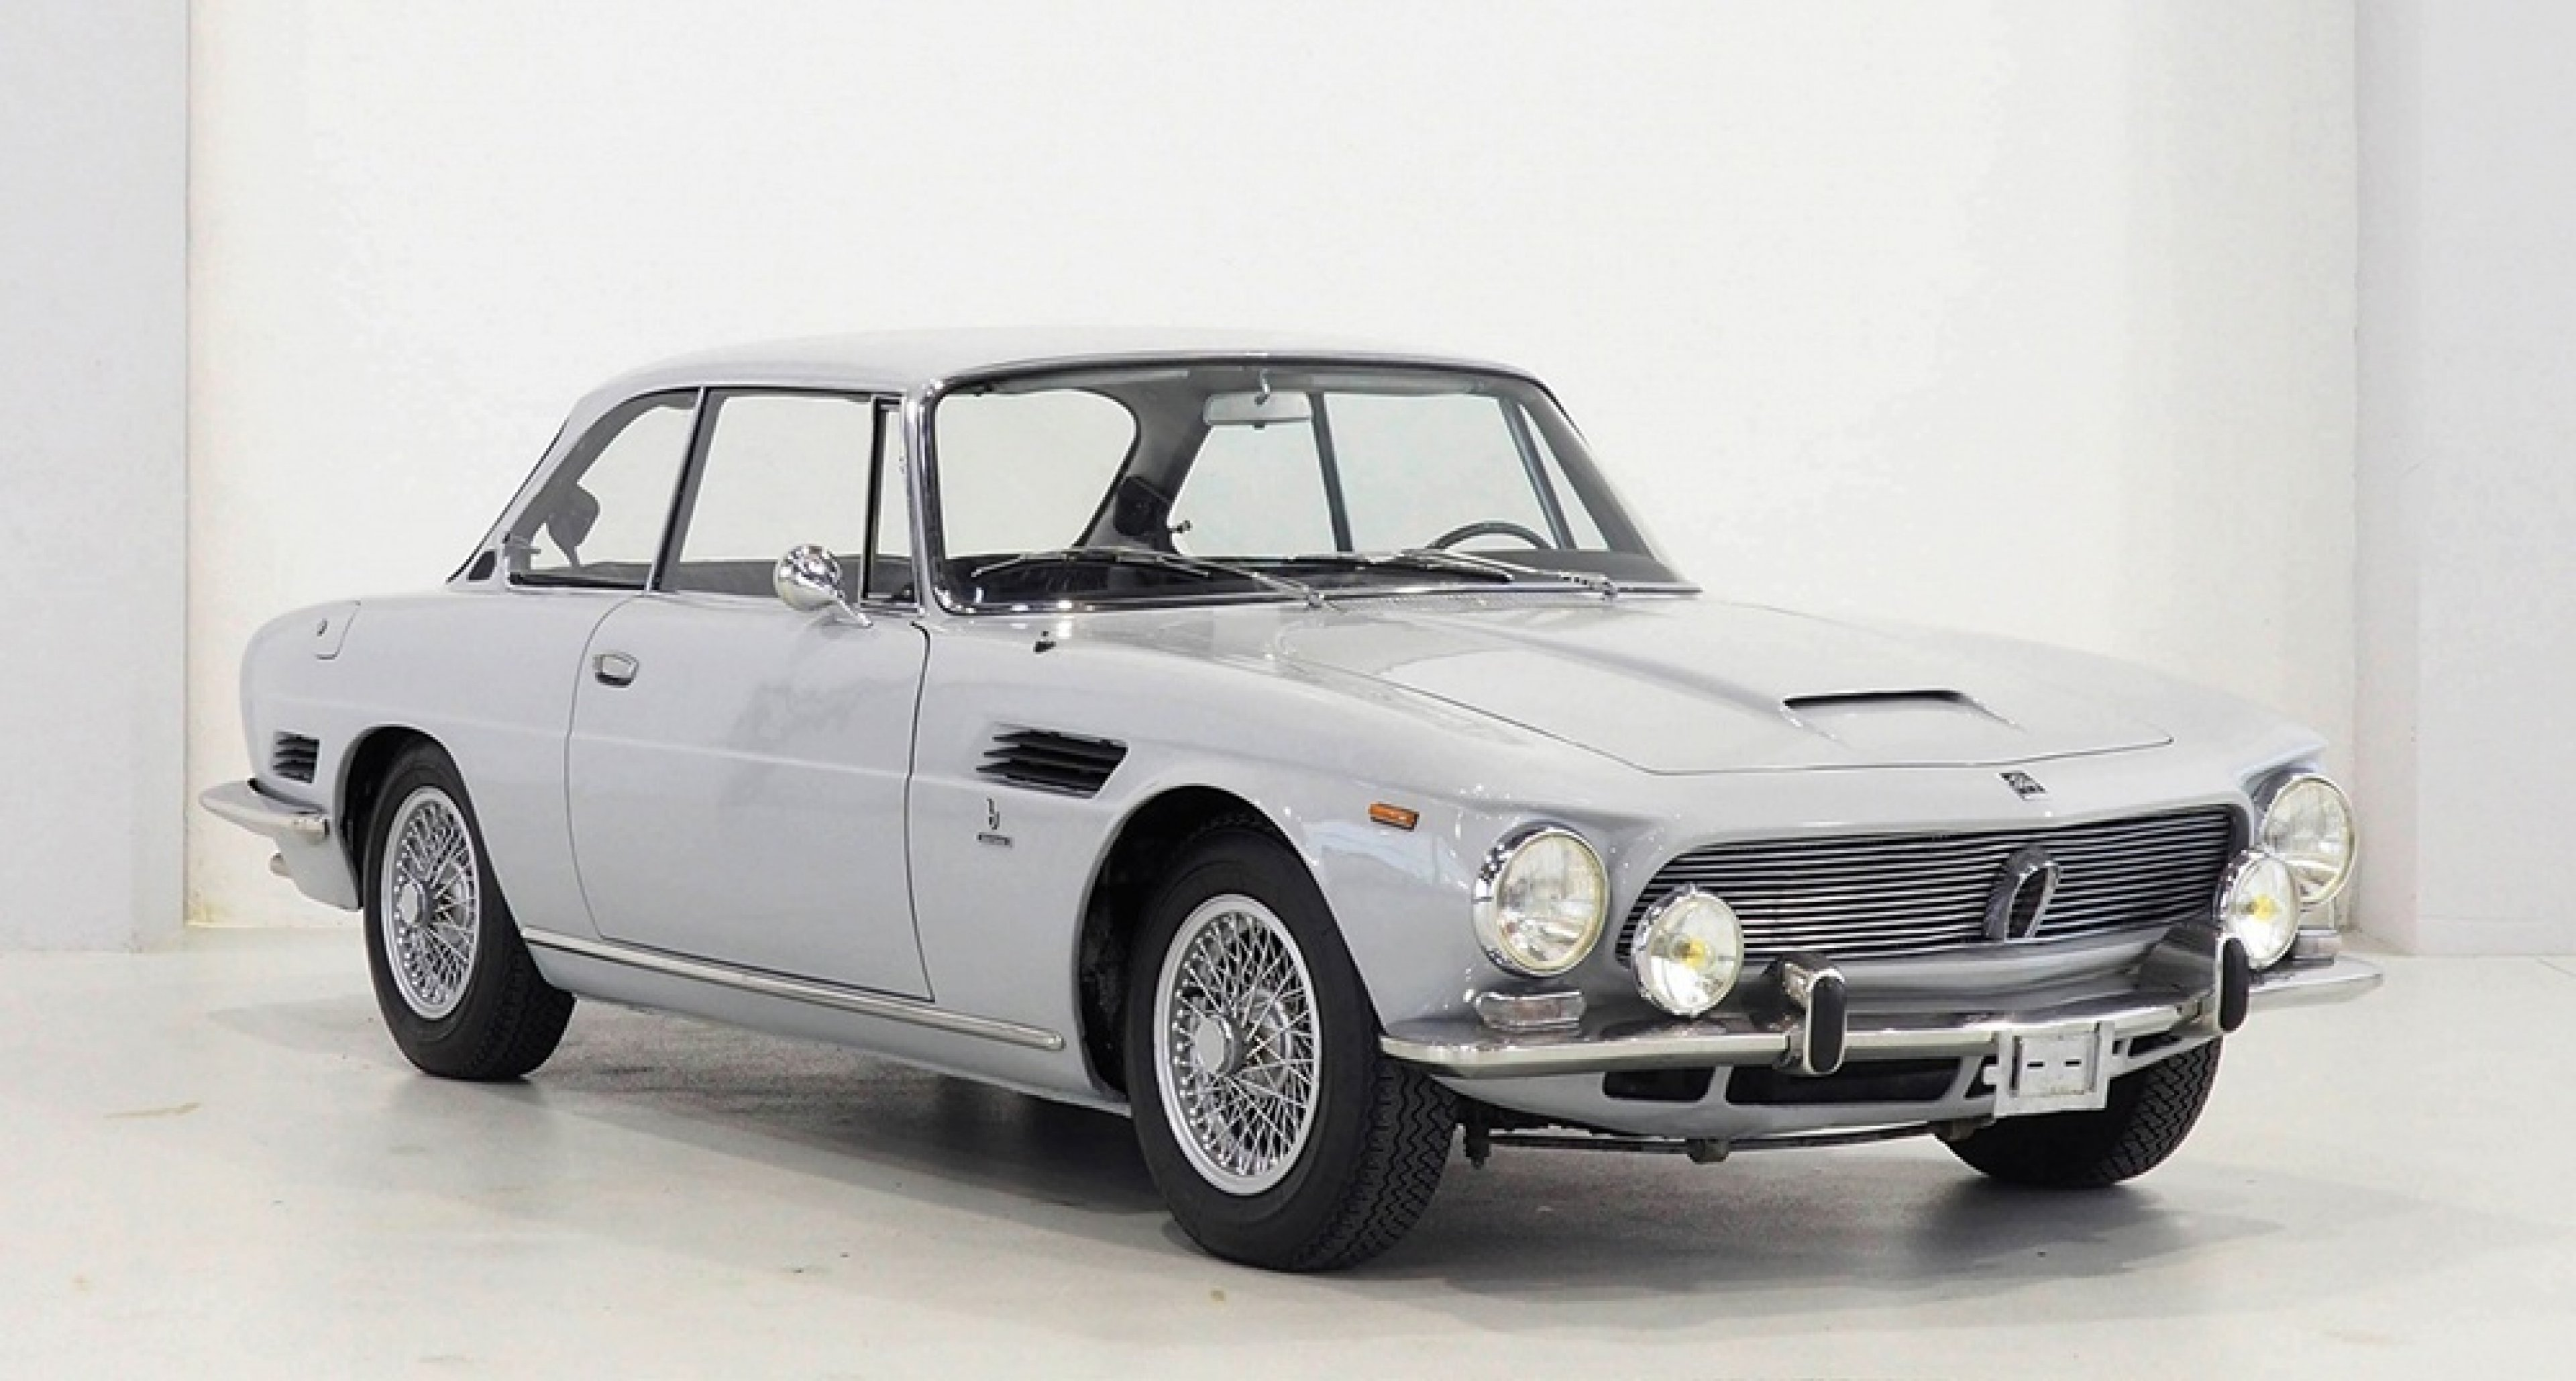 Dorotheum Brings Its Most Divine Cars To The Classic Expo Salzburg